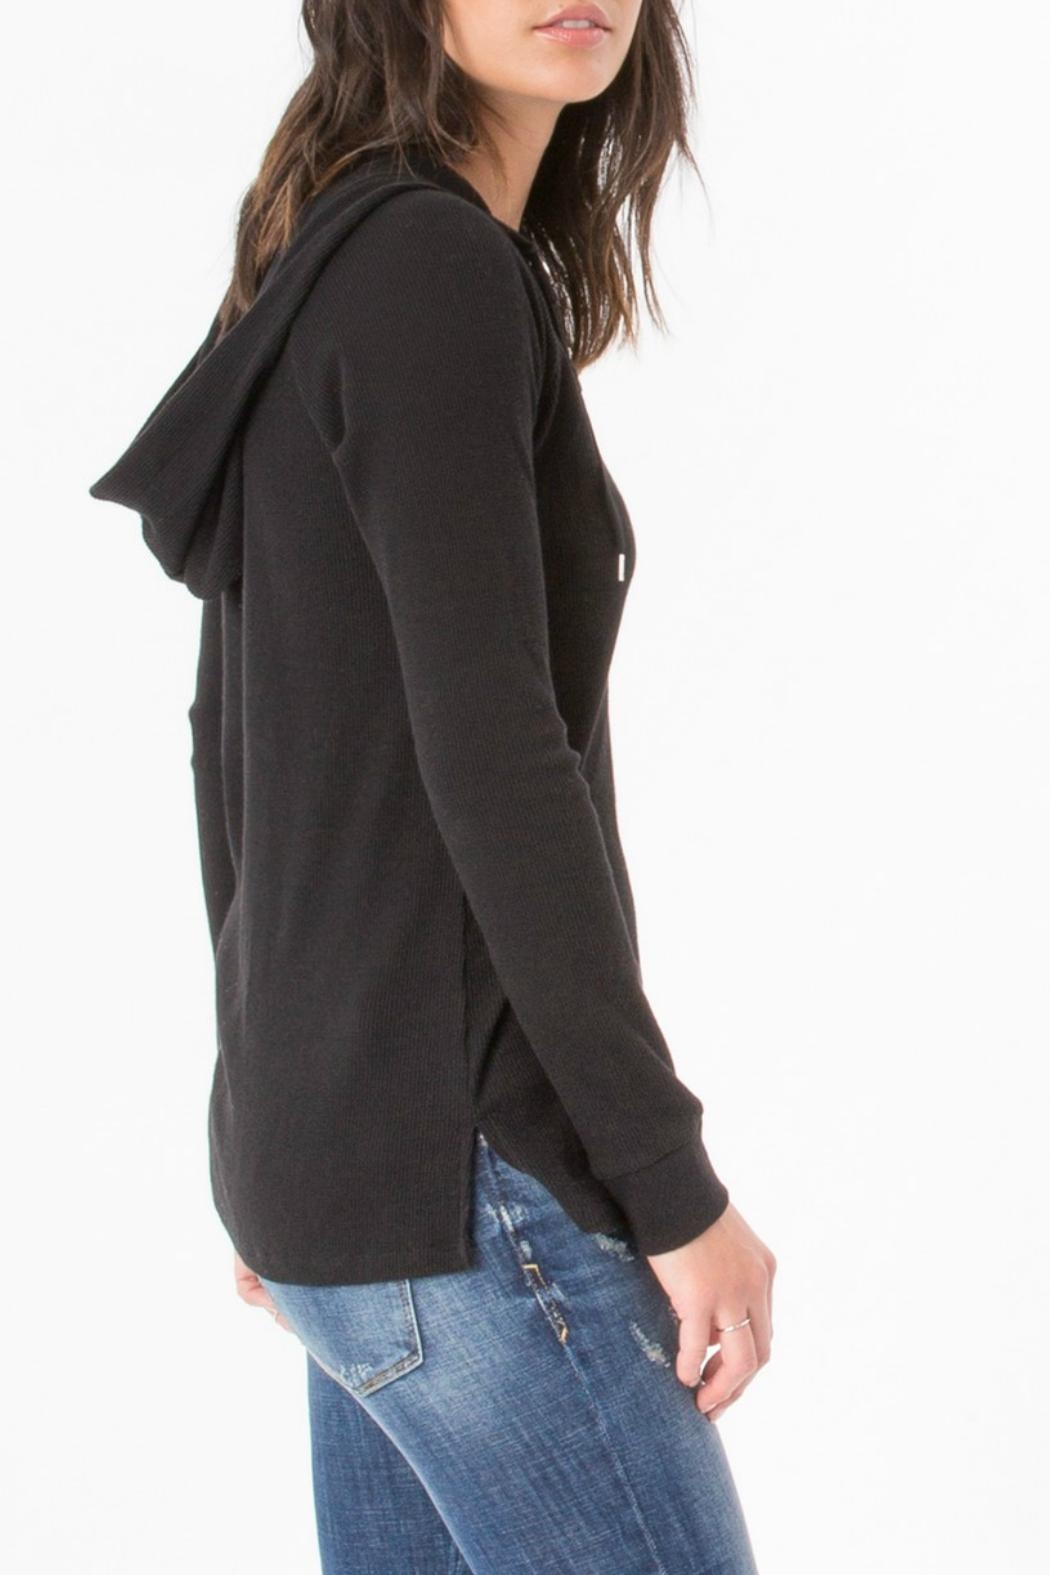 z supply Thermal Lace Up Sweater - Front Full Image